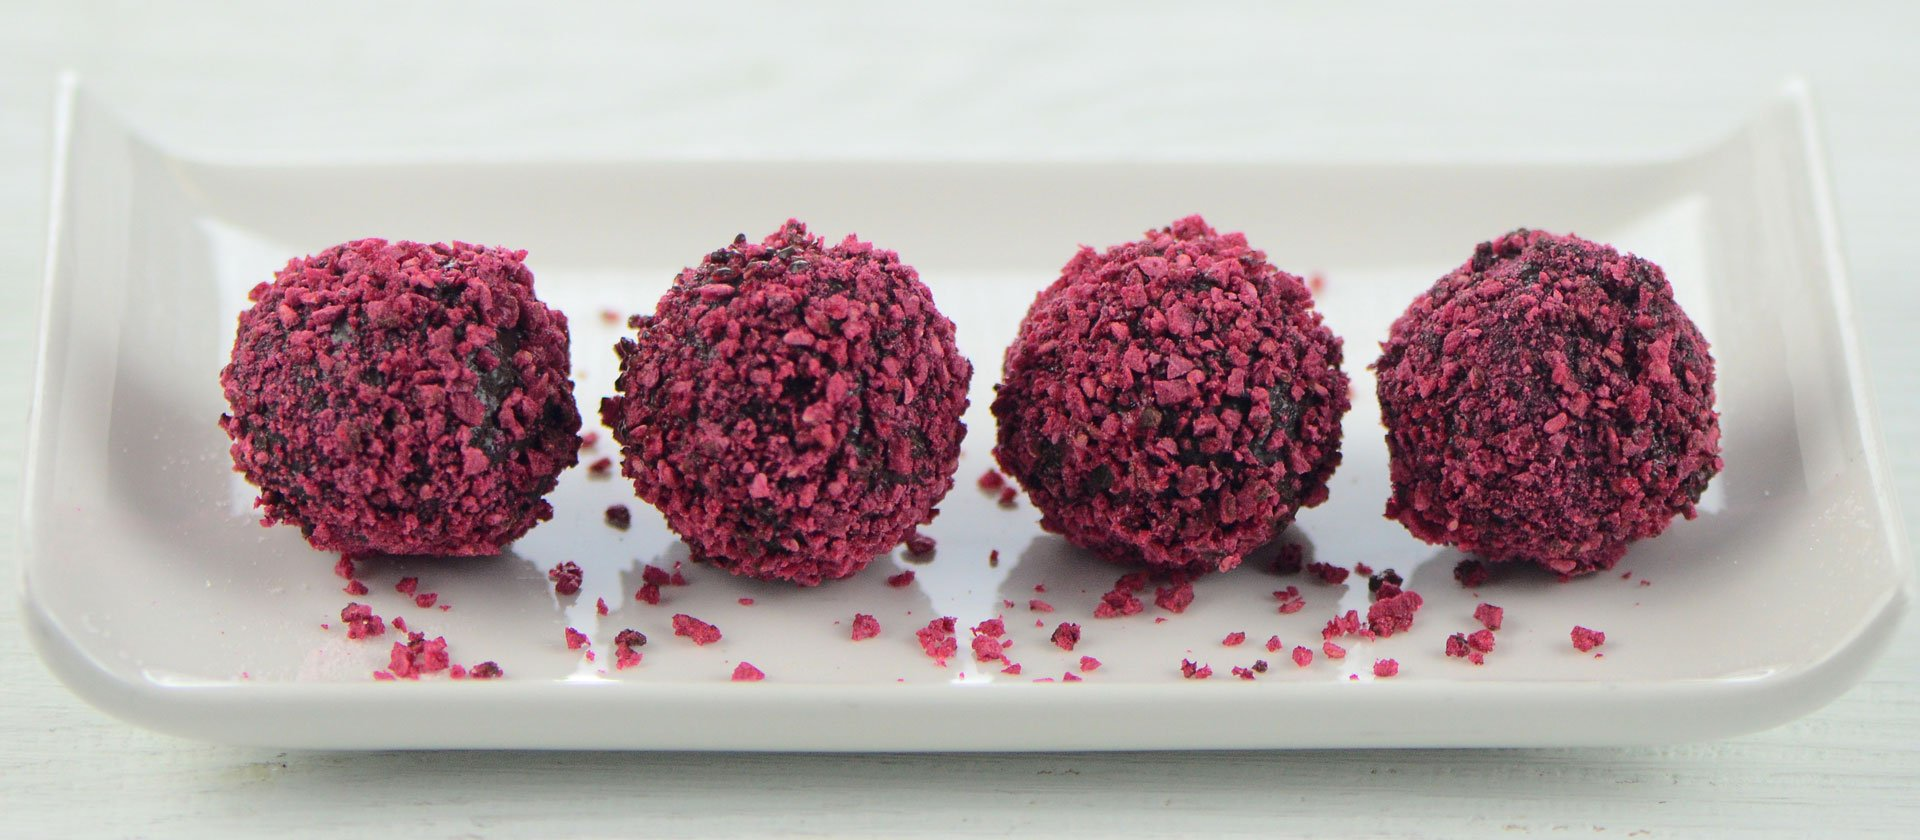 raspberry truffle recipe